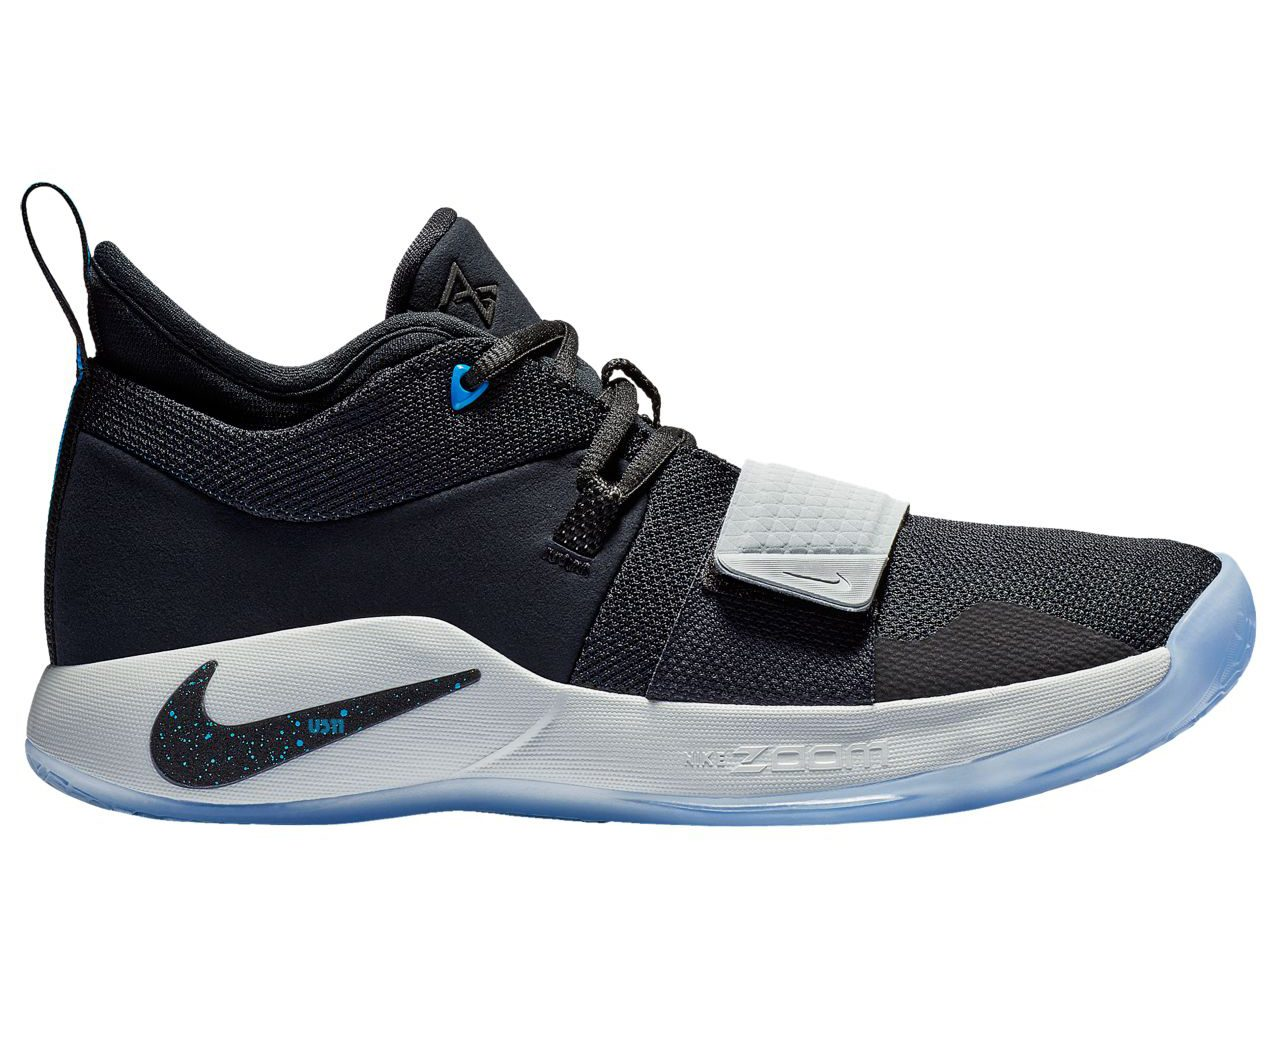 Expect the Nike PG 2.5 'Photo Blue' to